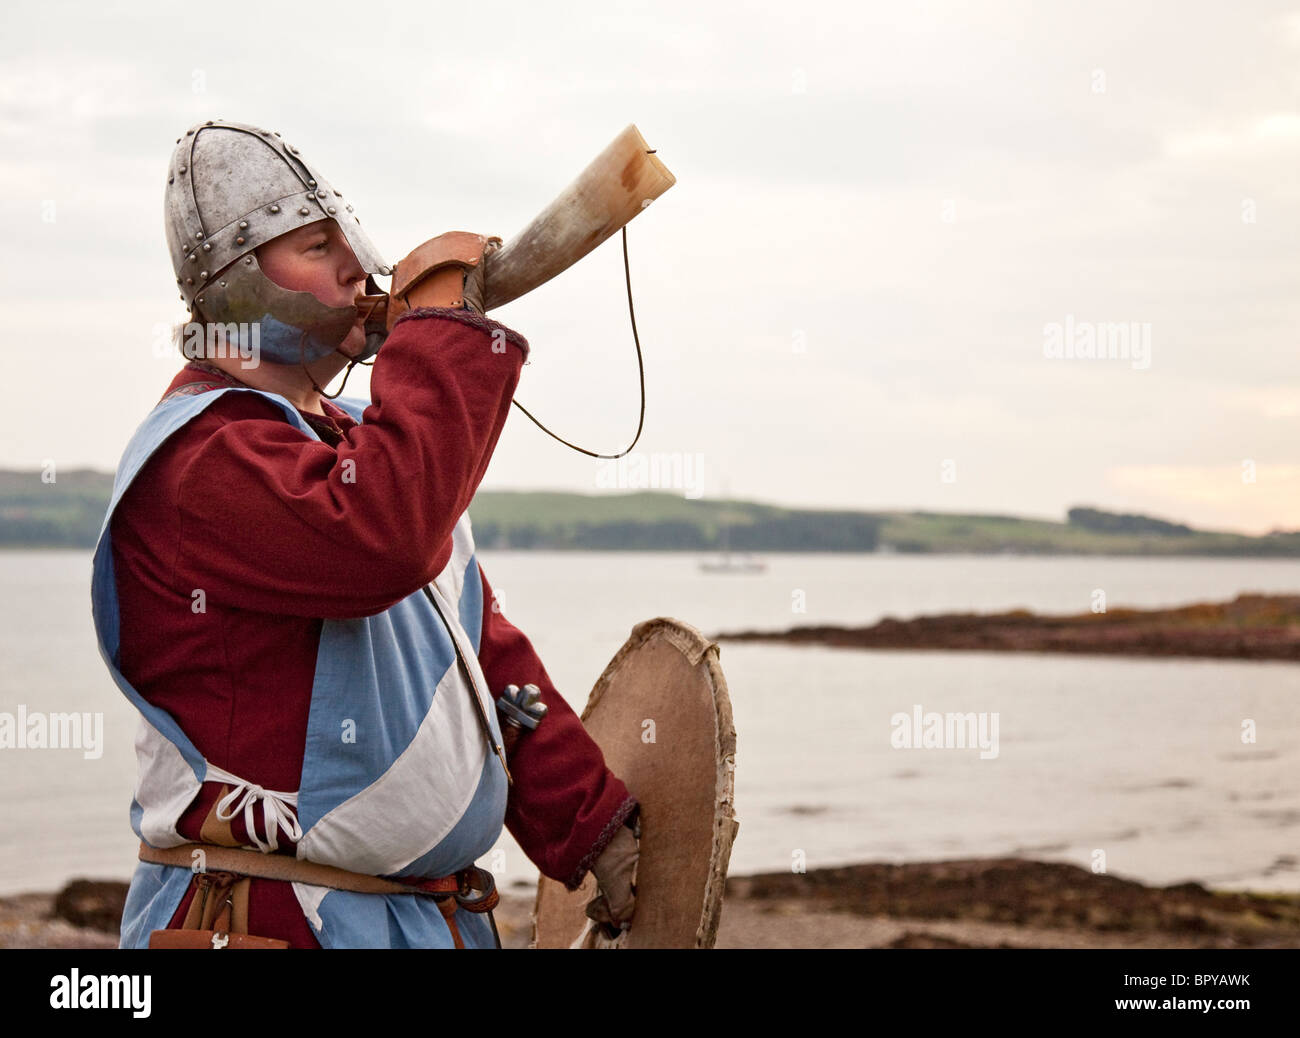 Man dressed as a 13th century Scottish soldier blowing horn preparing to re-enact the Battle of Largs. River Clyde - Stock Image